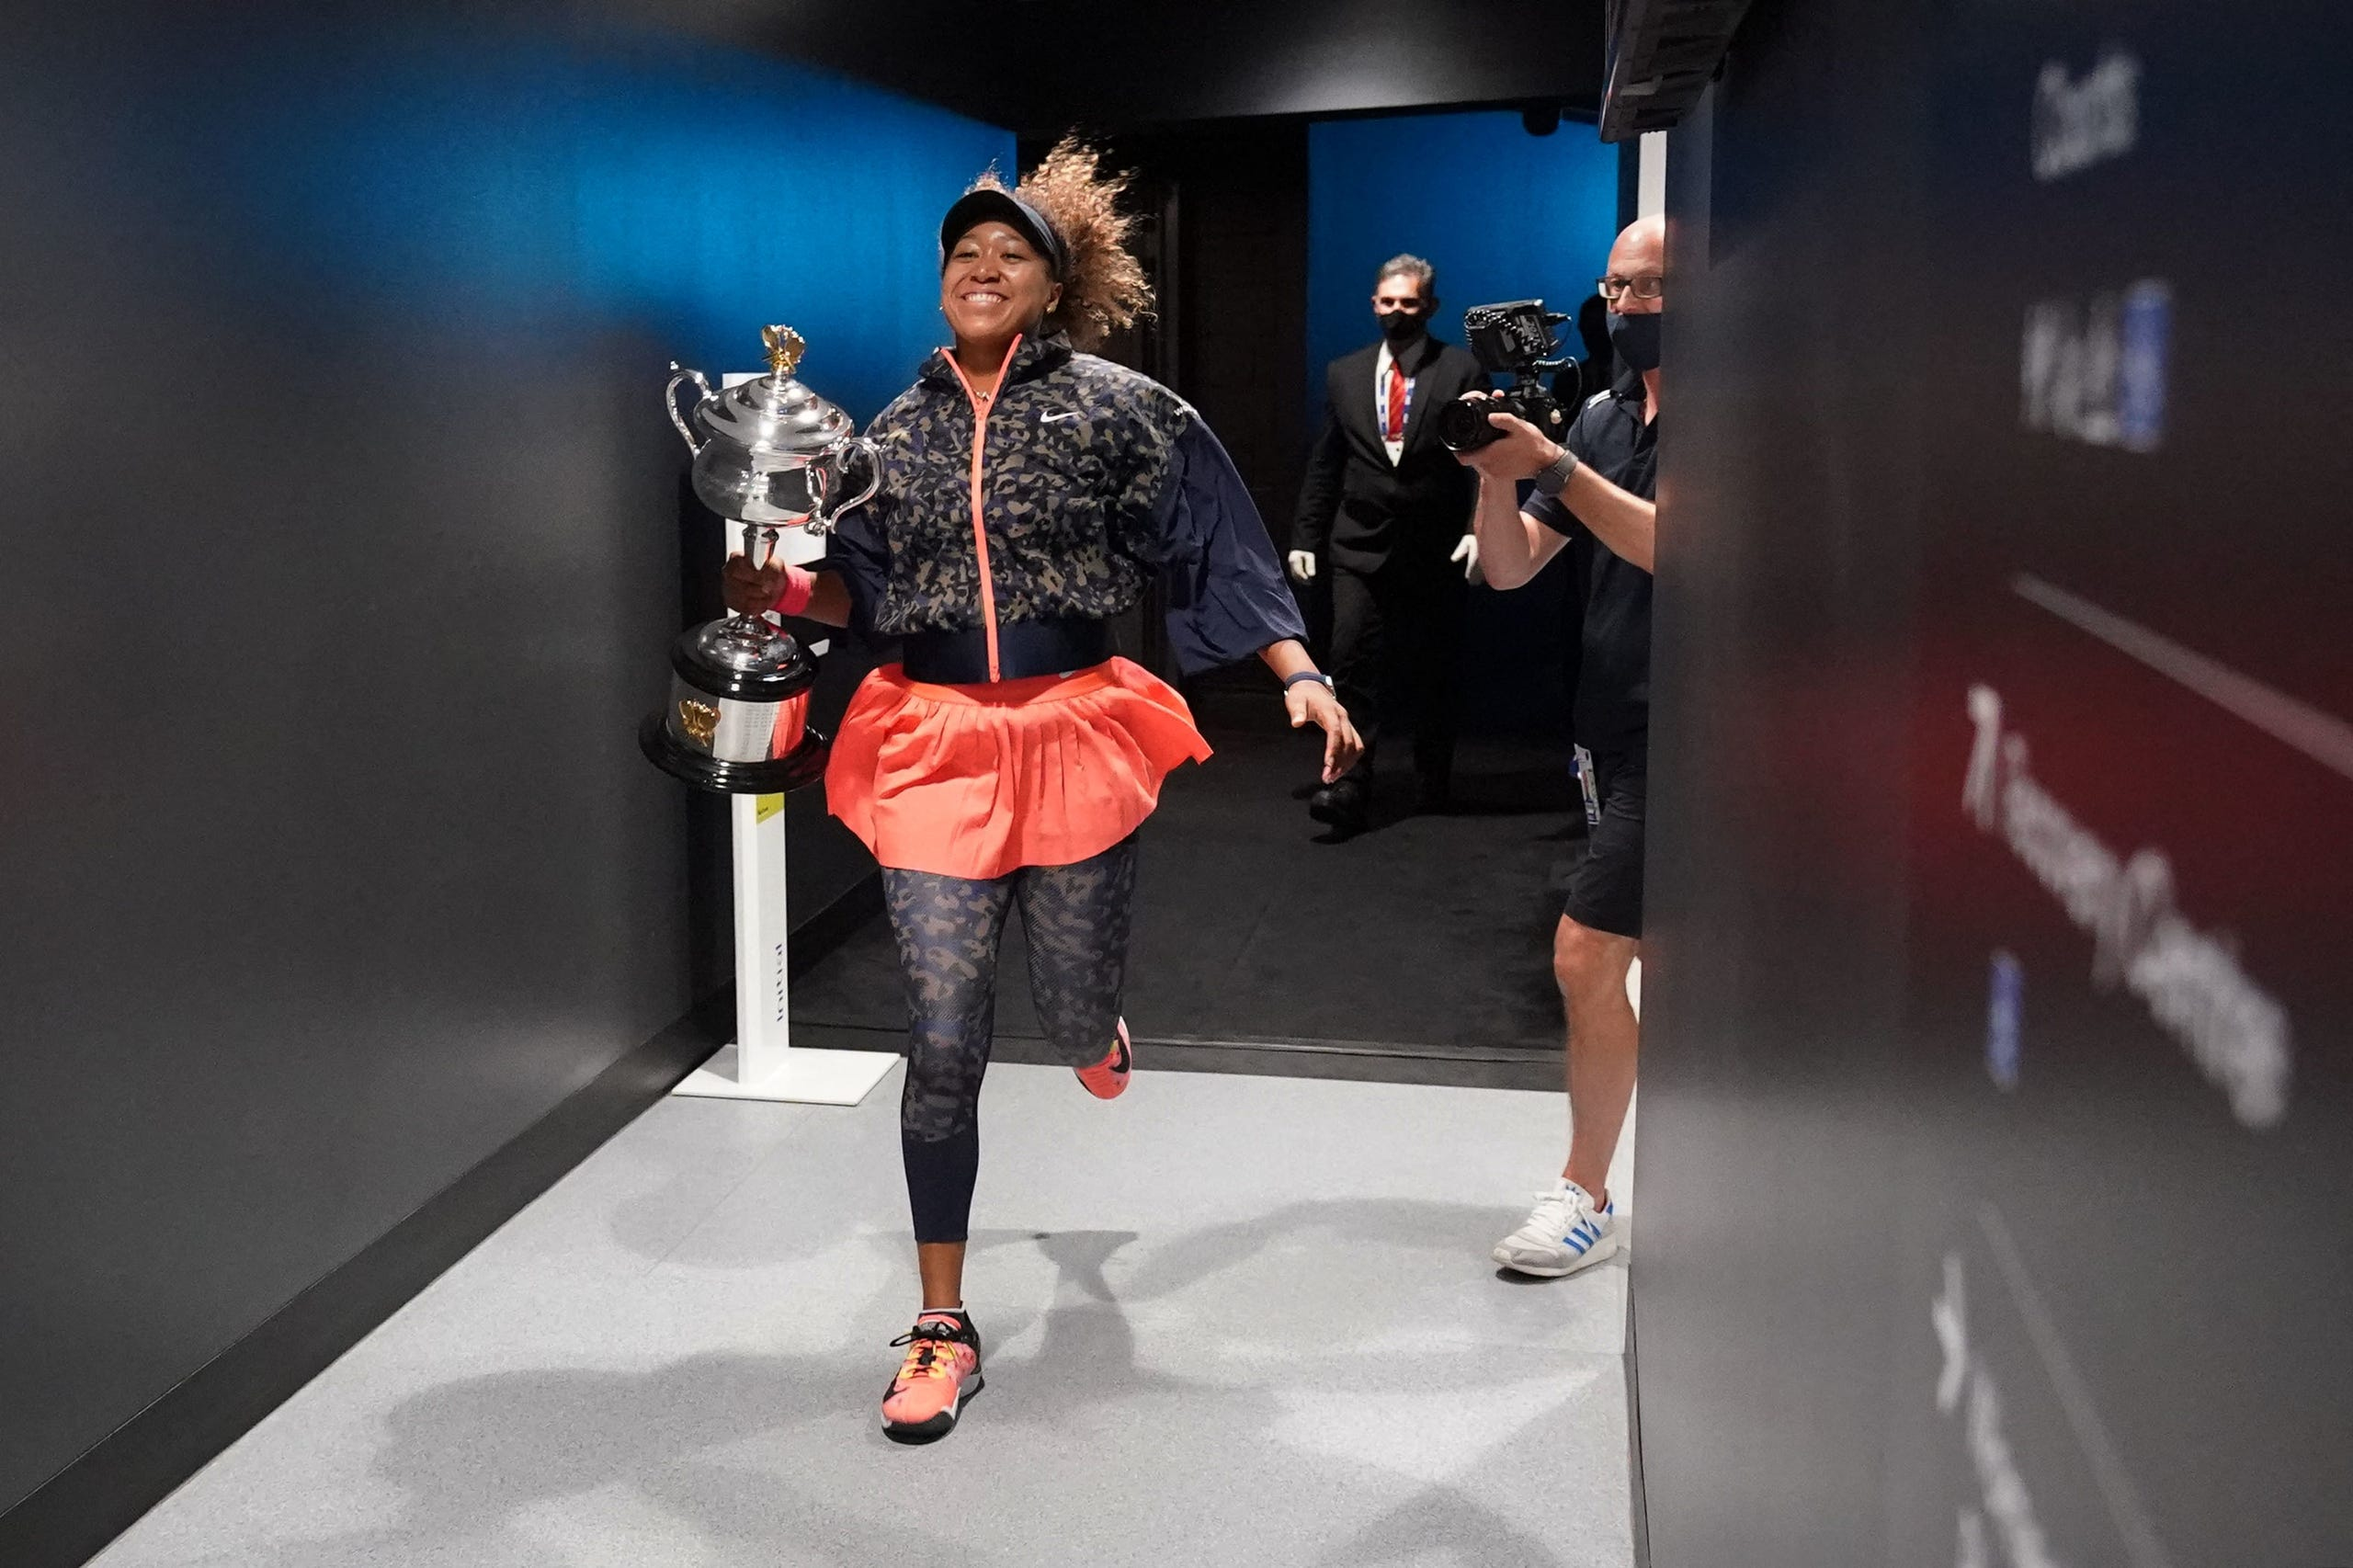 This hand out photo released by the Tennis Australia on February 20, 2021 shows Japan's Naomi Osaka celebrates with the Daphne Akhurst Memorial Cup trophy after her women's singles final match against Jennifer Brady of the US on day thirteen of the Australian Open tennis tournament in Melbourne.